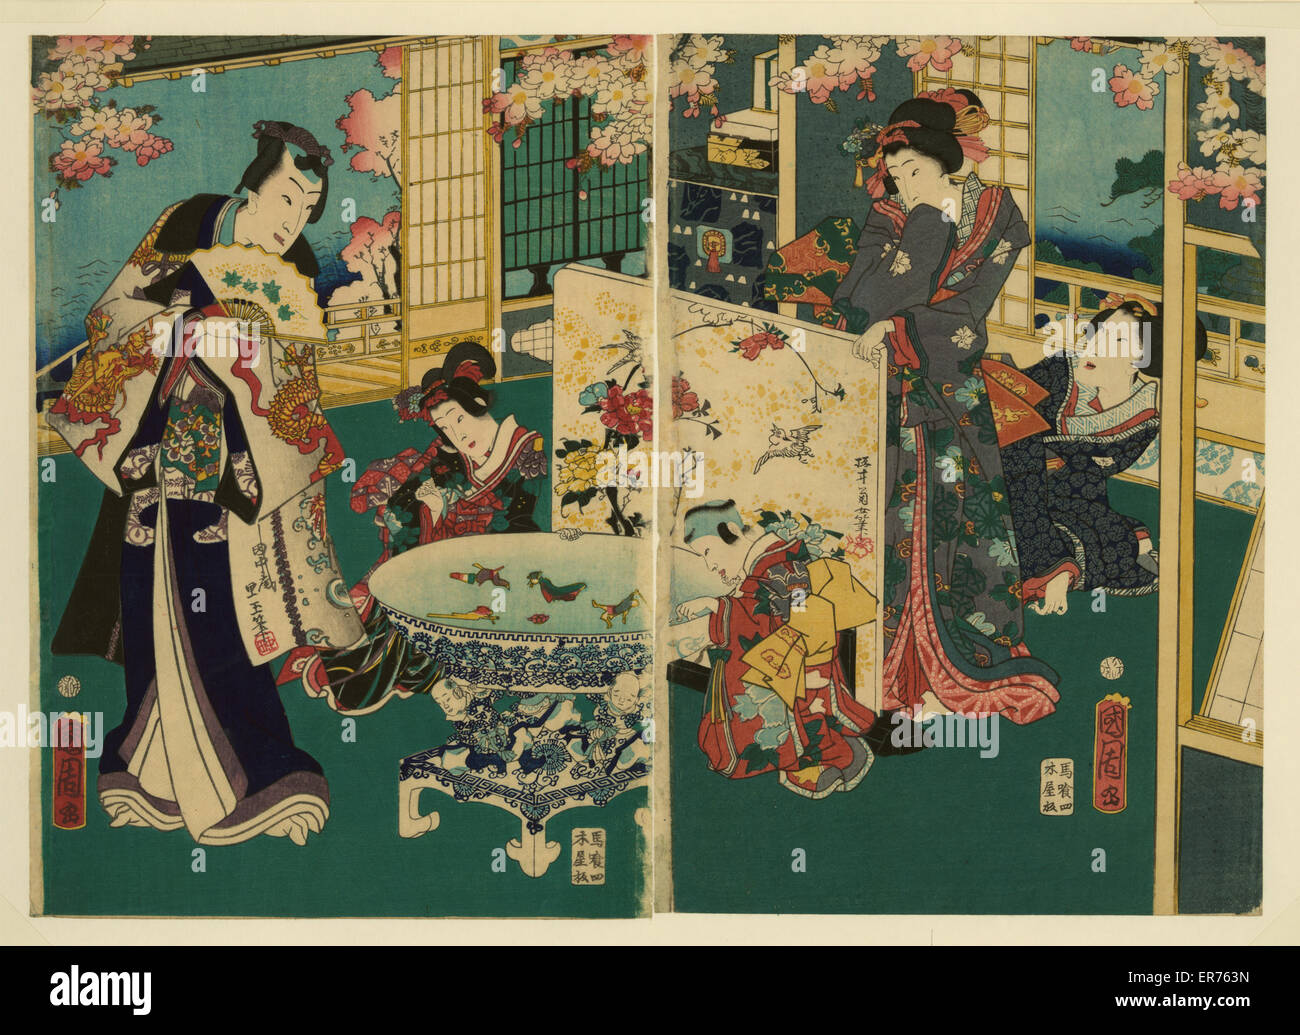 Flower performance. Ukiyo-e diptych showing richly-dressed man, two children, and two women in a richly-appointed - Stock Image